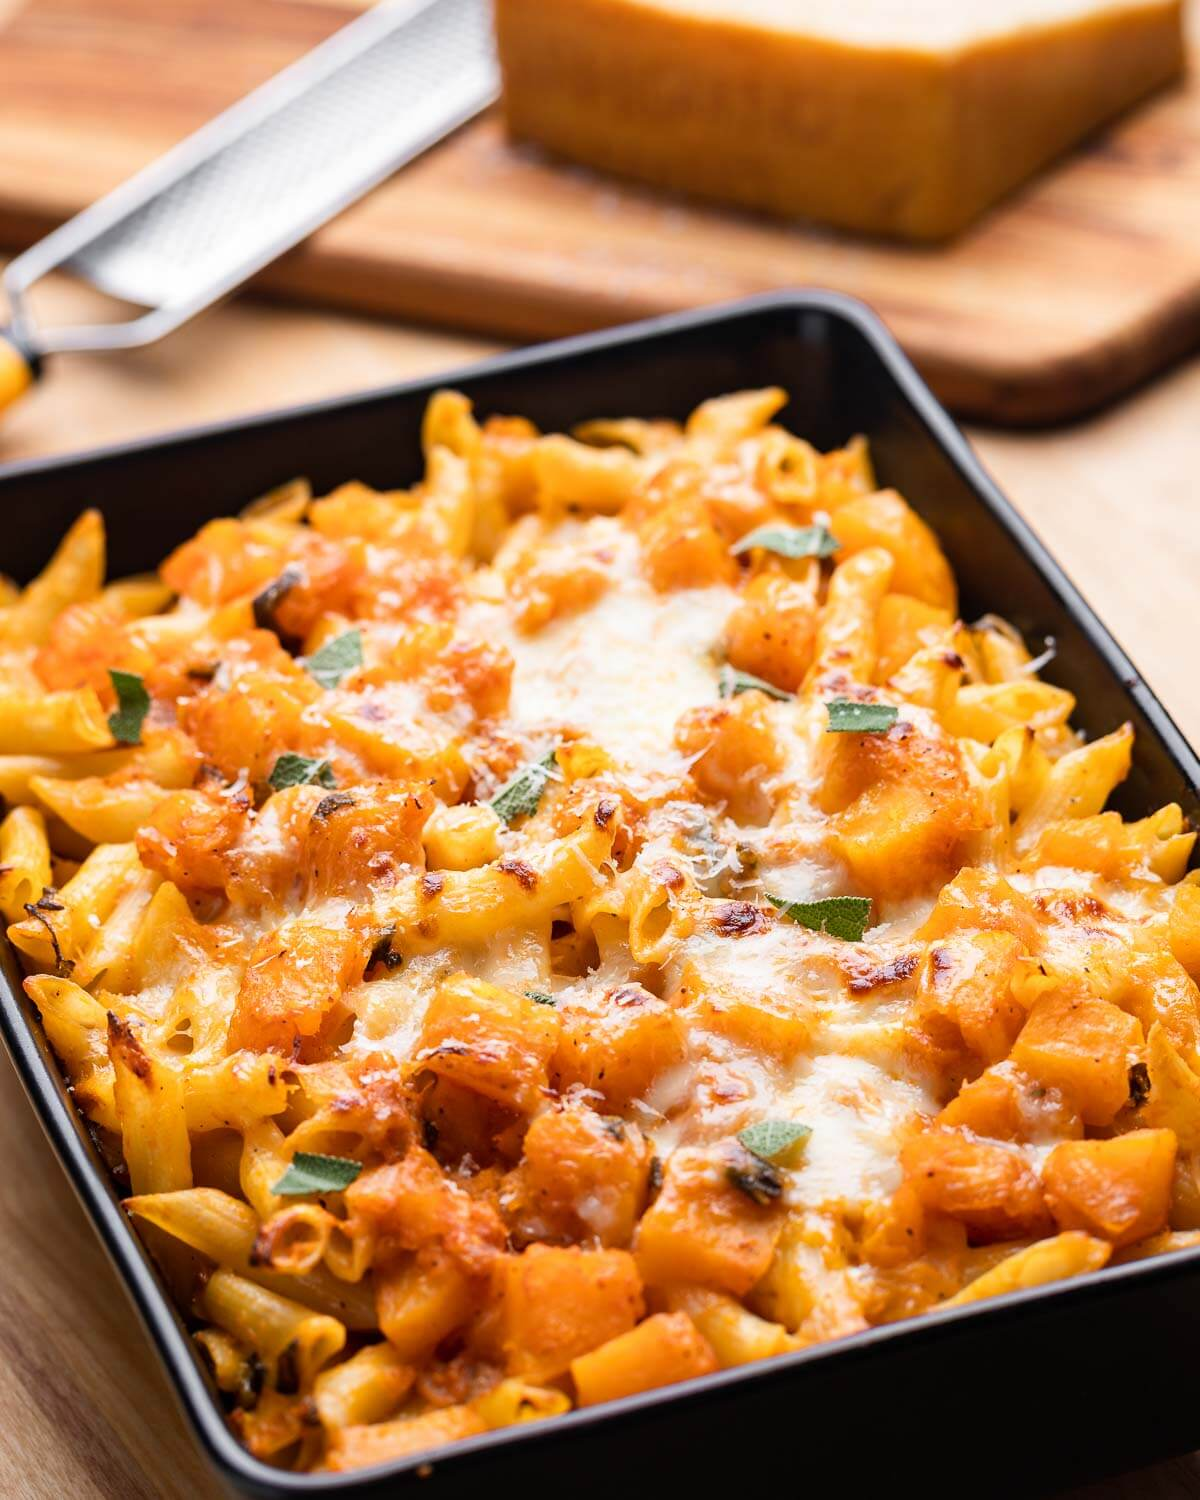 Baking dish with baked butternut squash pasta and block of Parmigiano Reggiano in background.